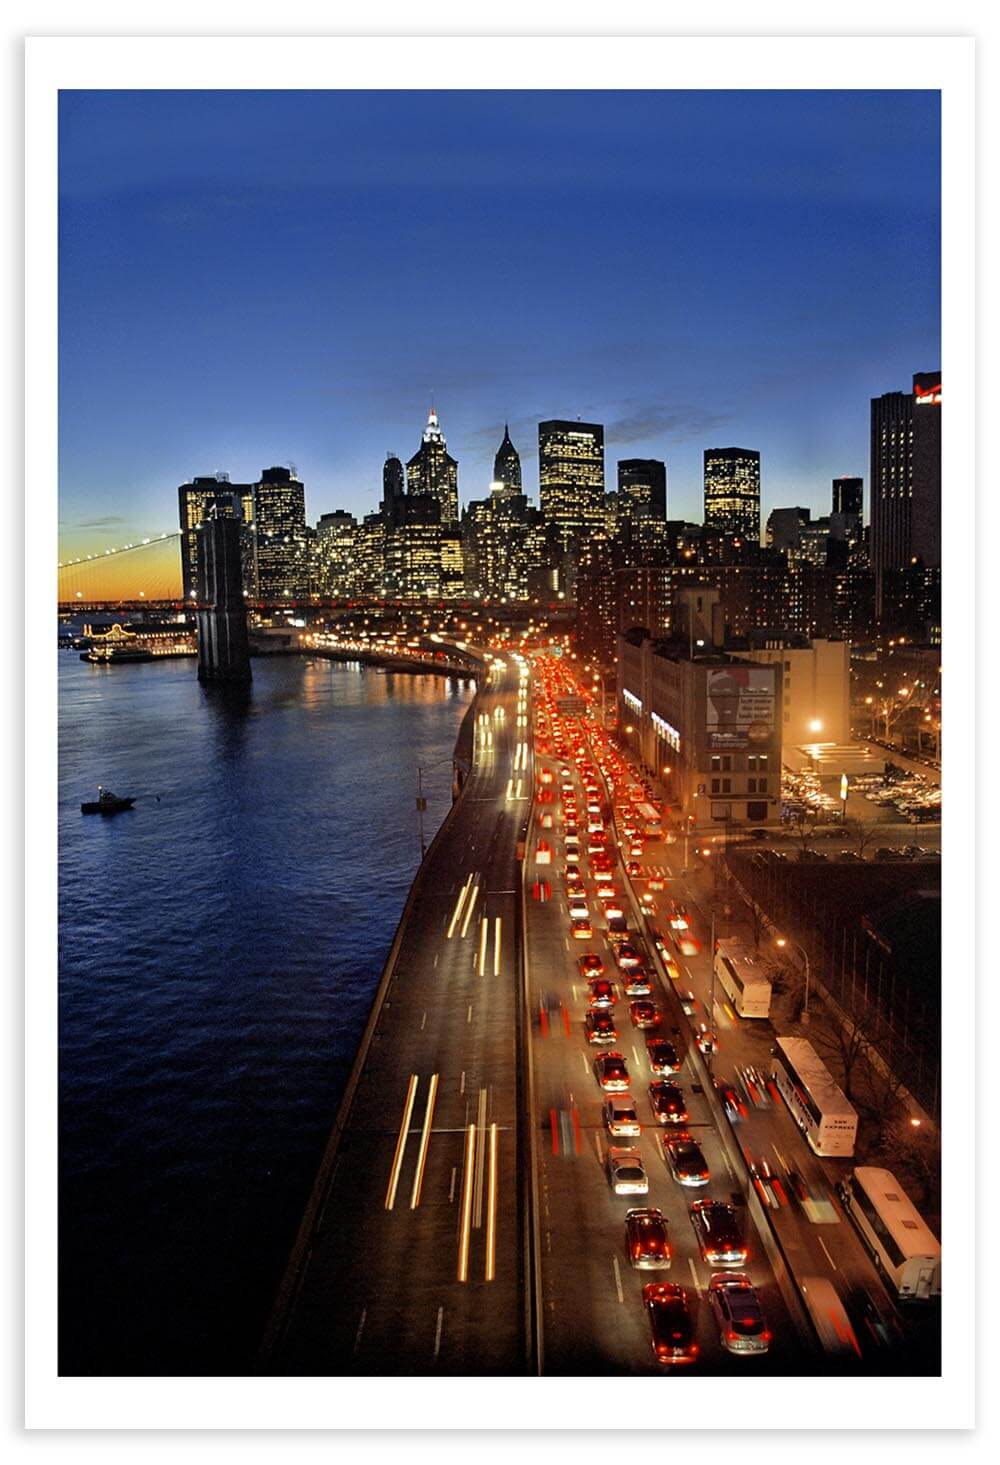 This photo was taken from the Manhattan Bridge during the 2005 New York City transit strike. I remember being very cold and tired as I walked from Manhattan back to Windsor Terrace (Brooklyn).